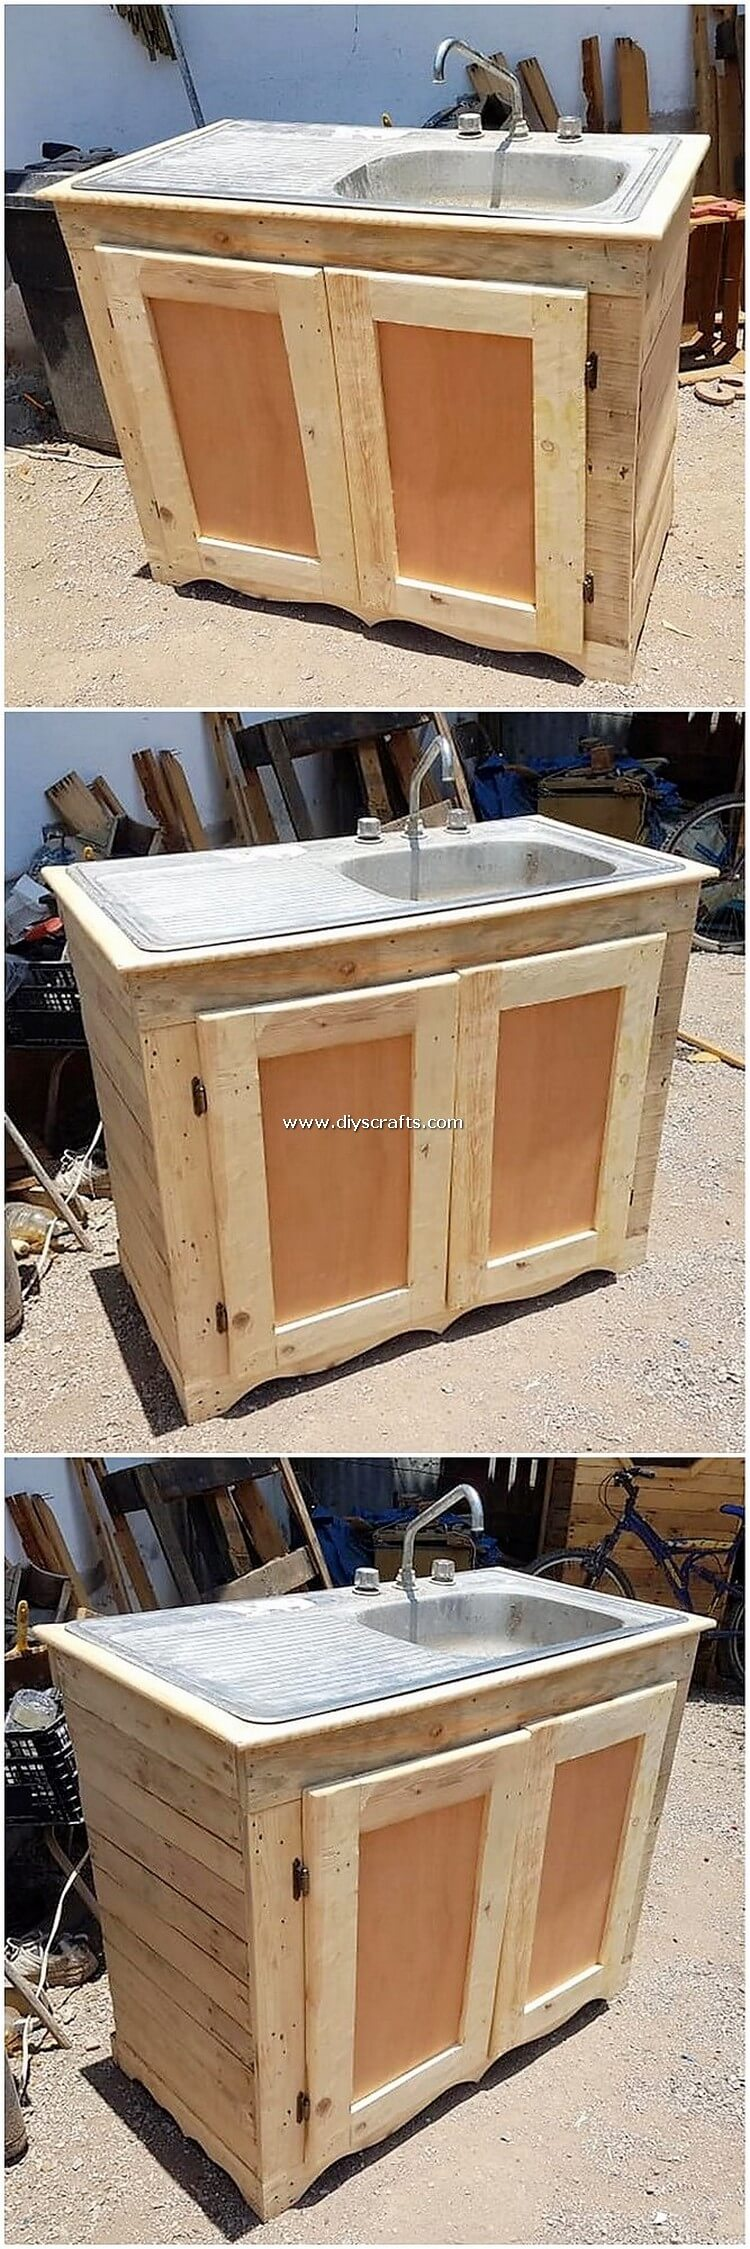 Wood-Pallet-Sink-with-Cabinet